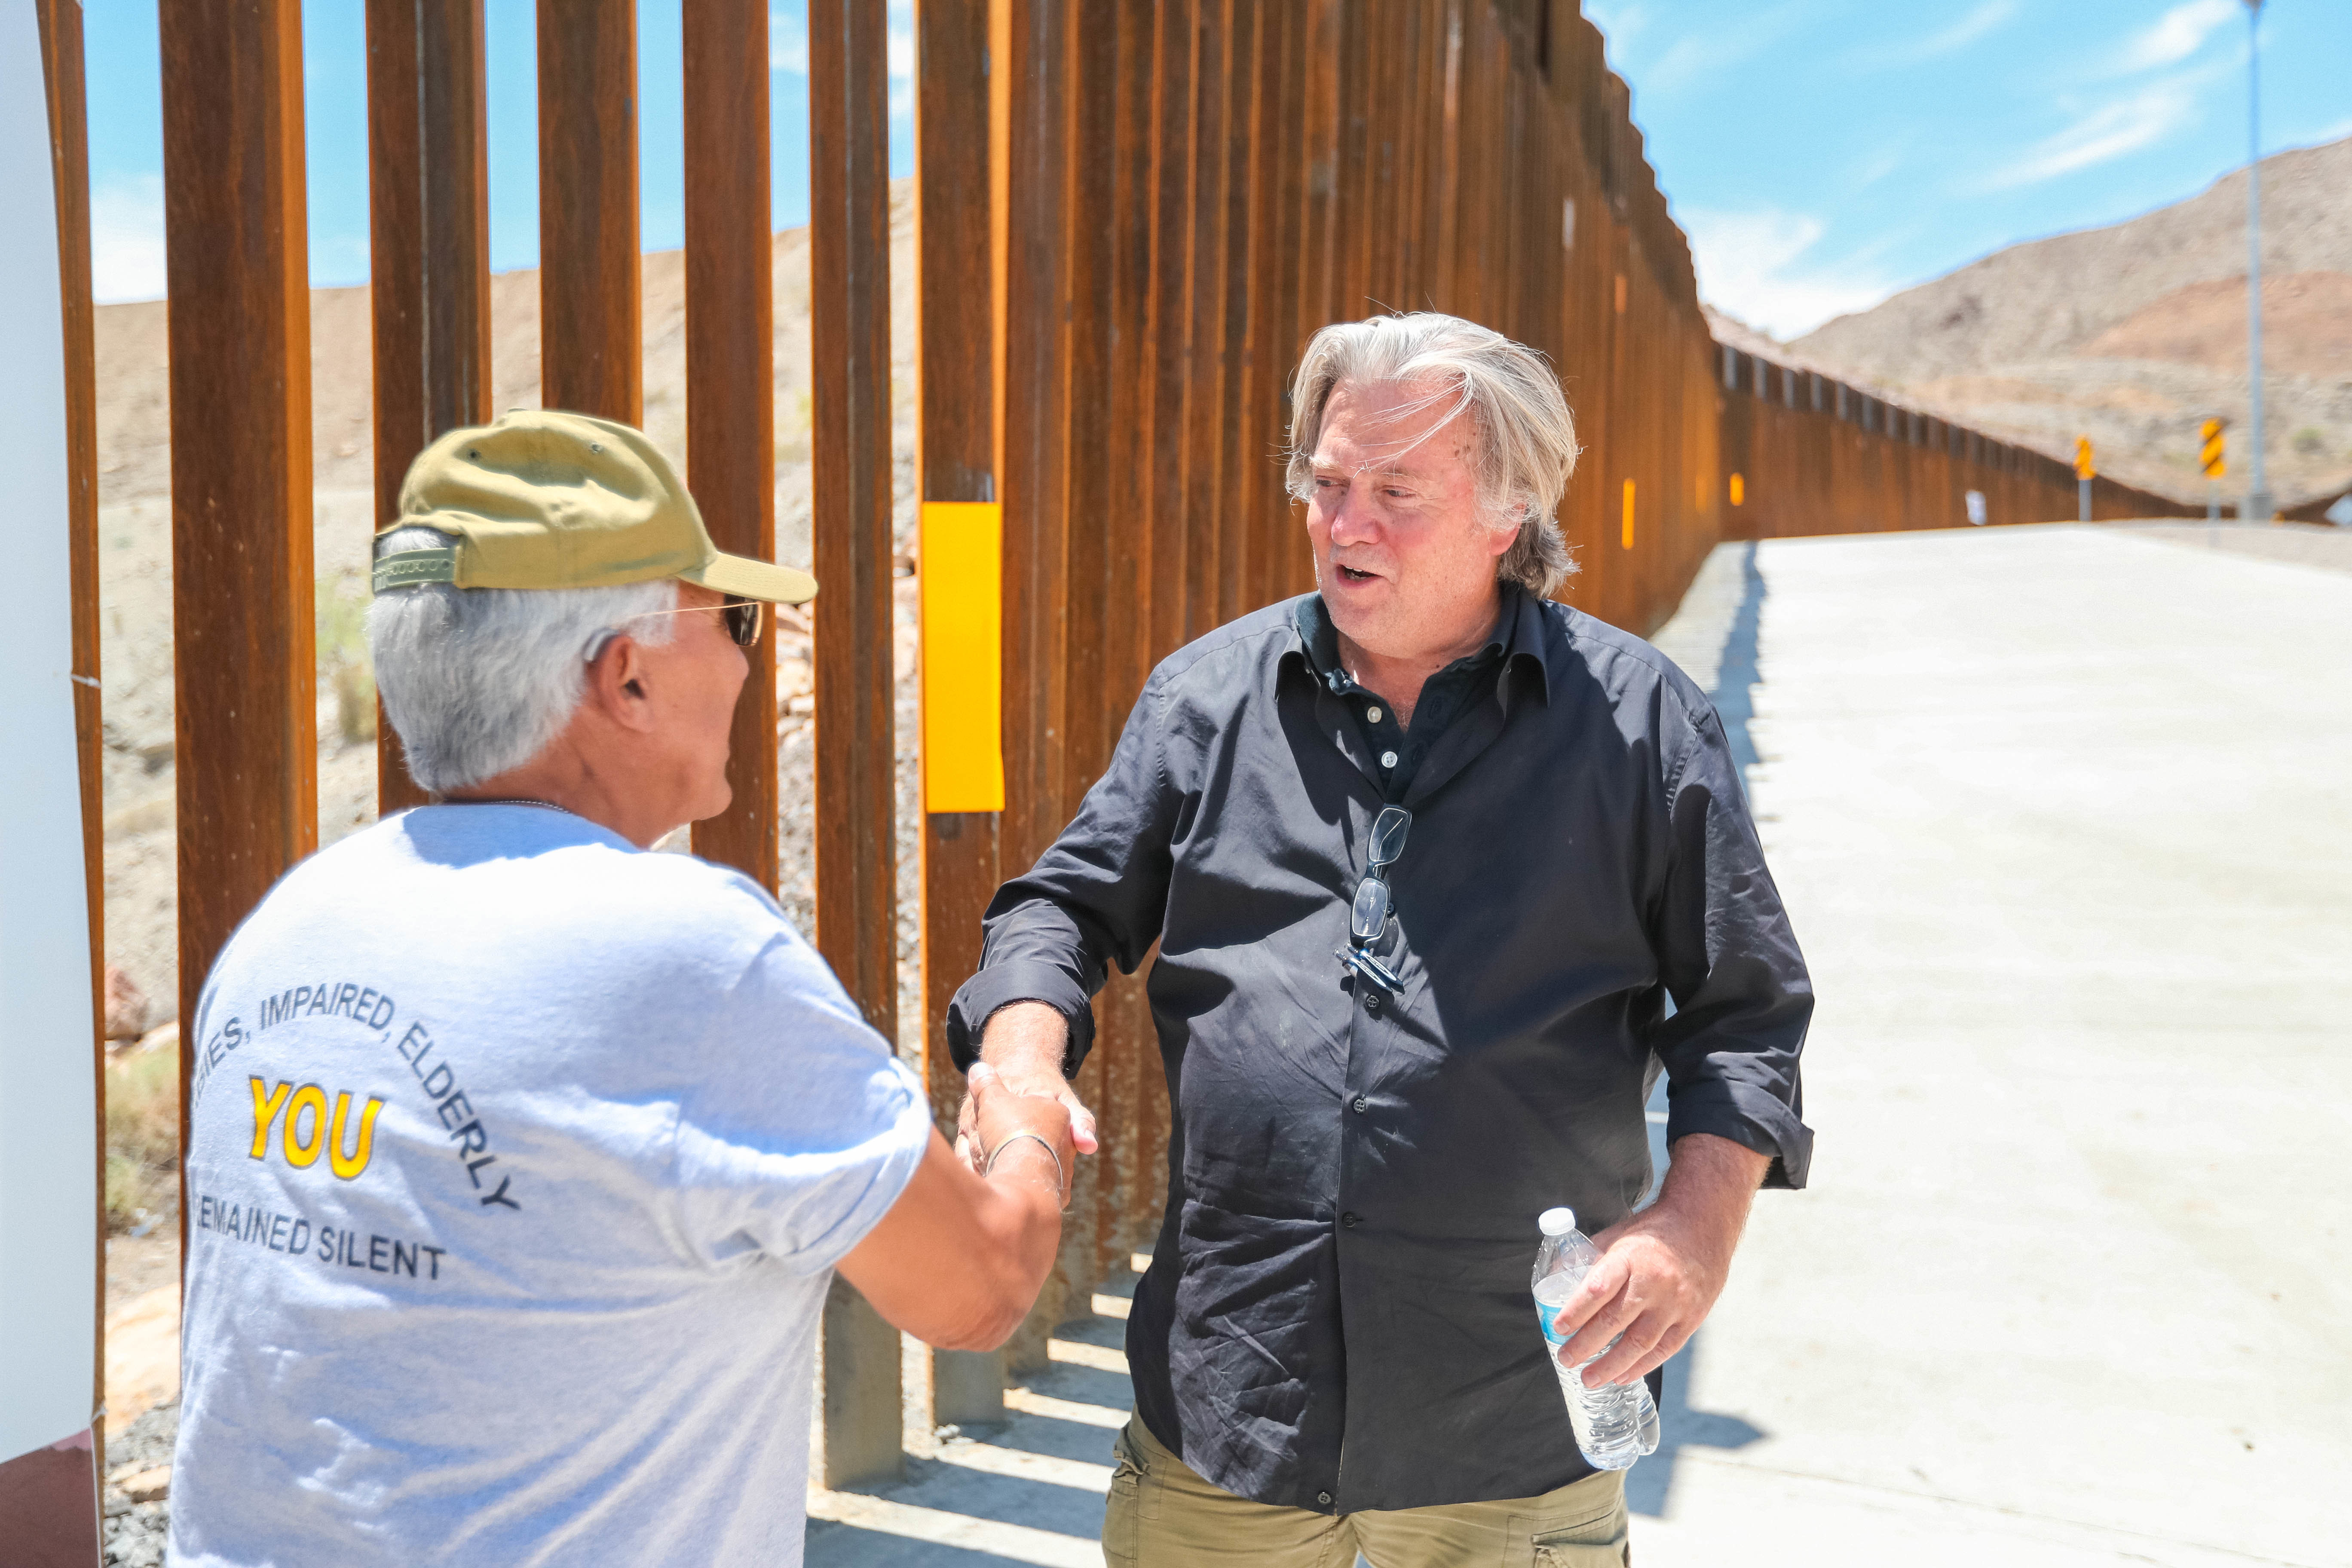 Steve Bannon vistis with a fan at the Symposium at the Wall: Cartels, Trafficking and Asylum near a privately built border wall in Sunland Park, New Mexico, constructed by the WeBuildTheWall organization on American Eagle Brick Co. property on Saturday, July 27, 2019. (Photo by Nathan J Fish/Sun-News via Imagn Content Services, LLC/USA Today Network/Sipa USA)